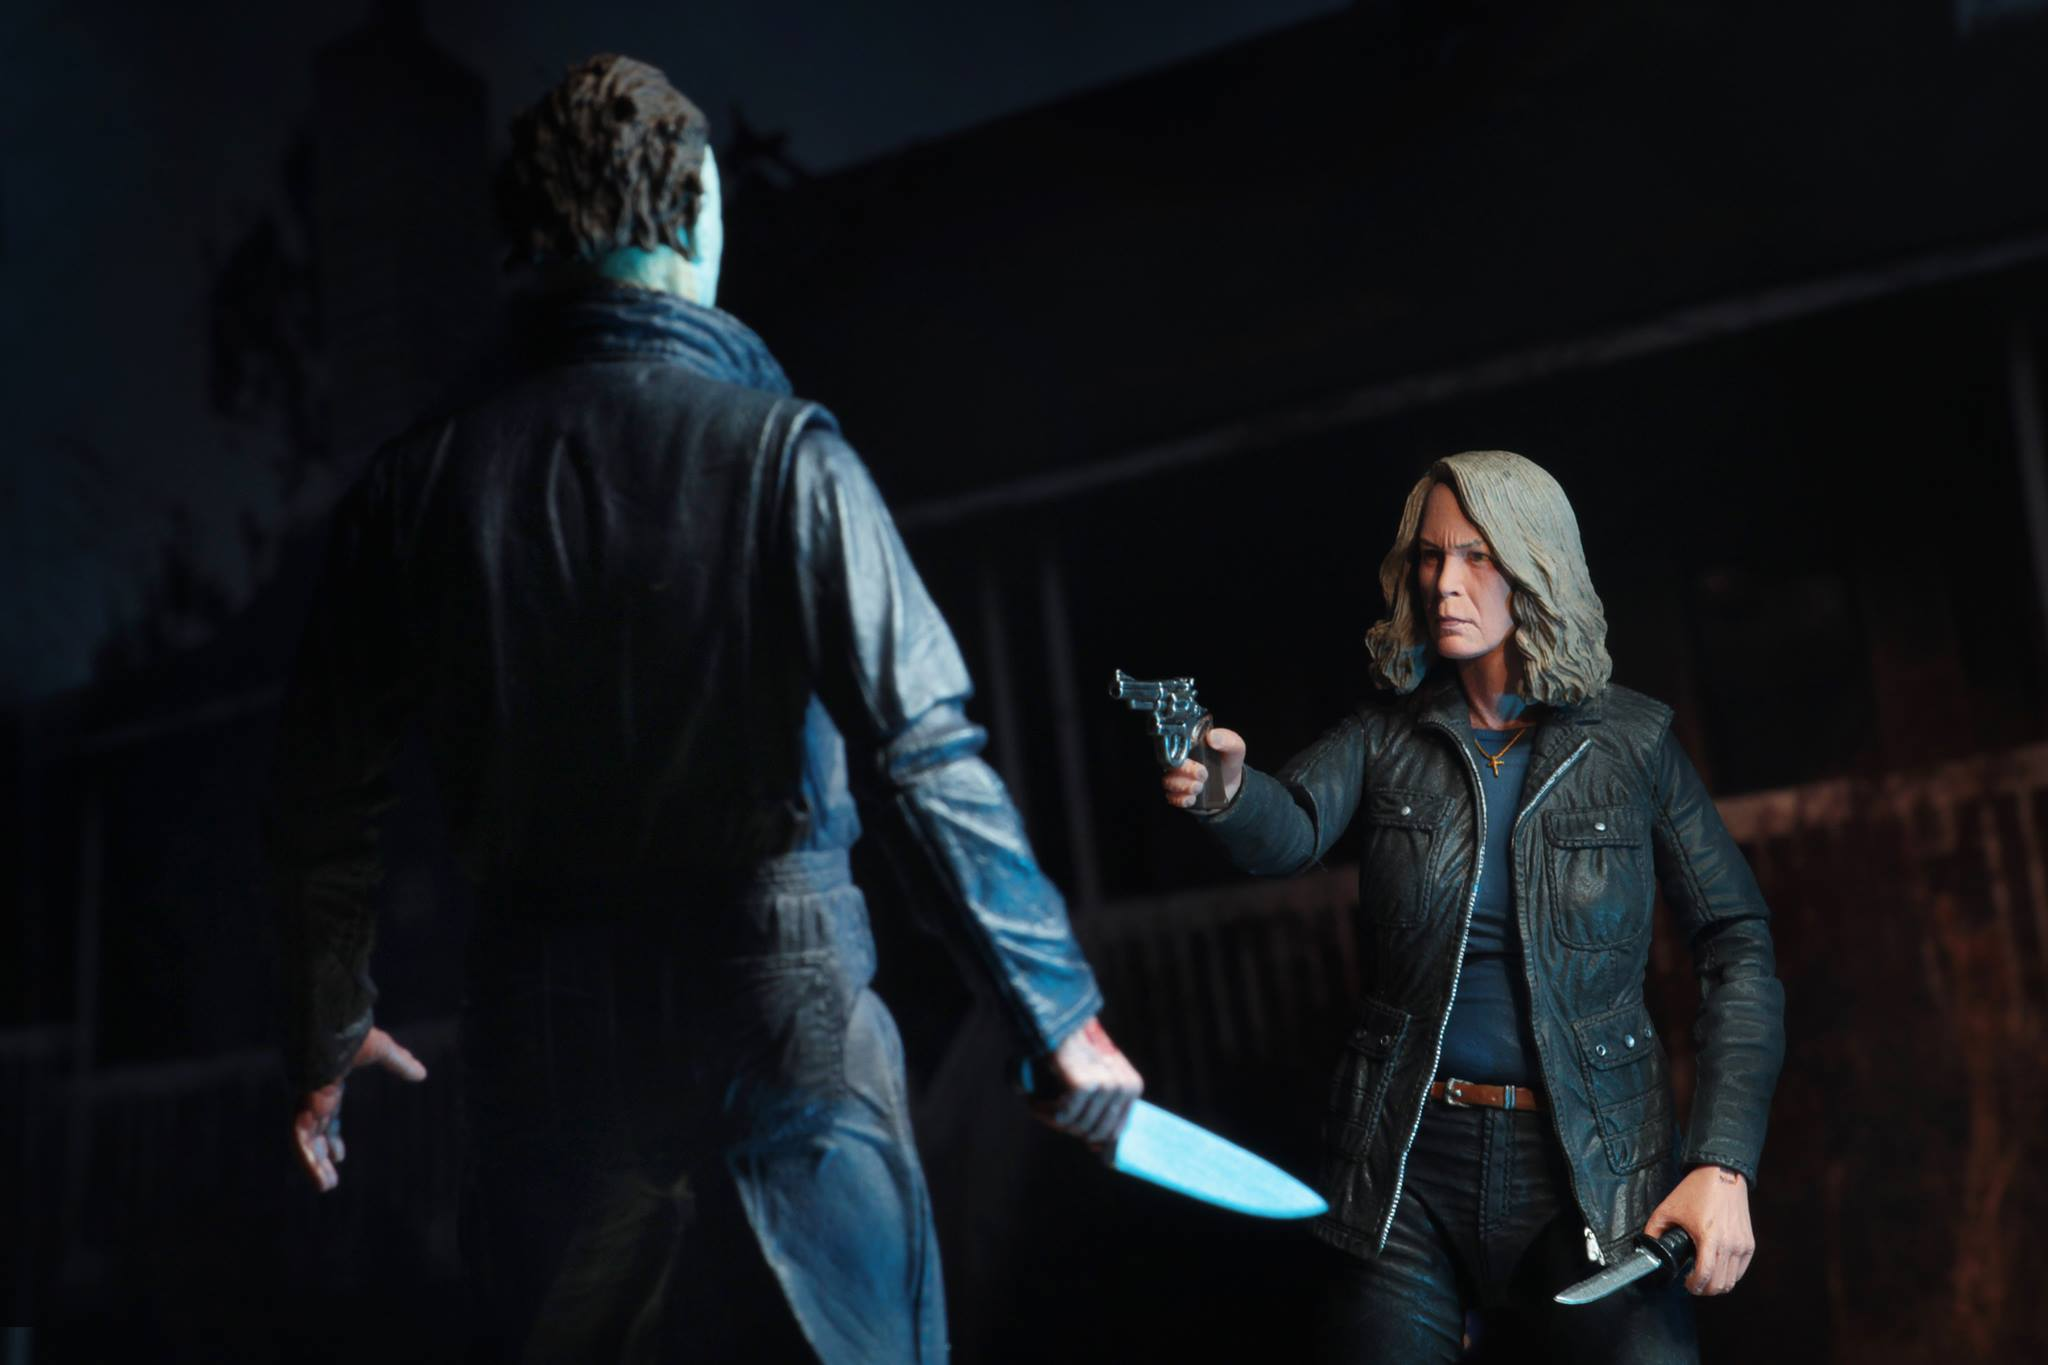 Halloween 2018 - Laurie Strode Ultimate Figure by NECA ...